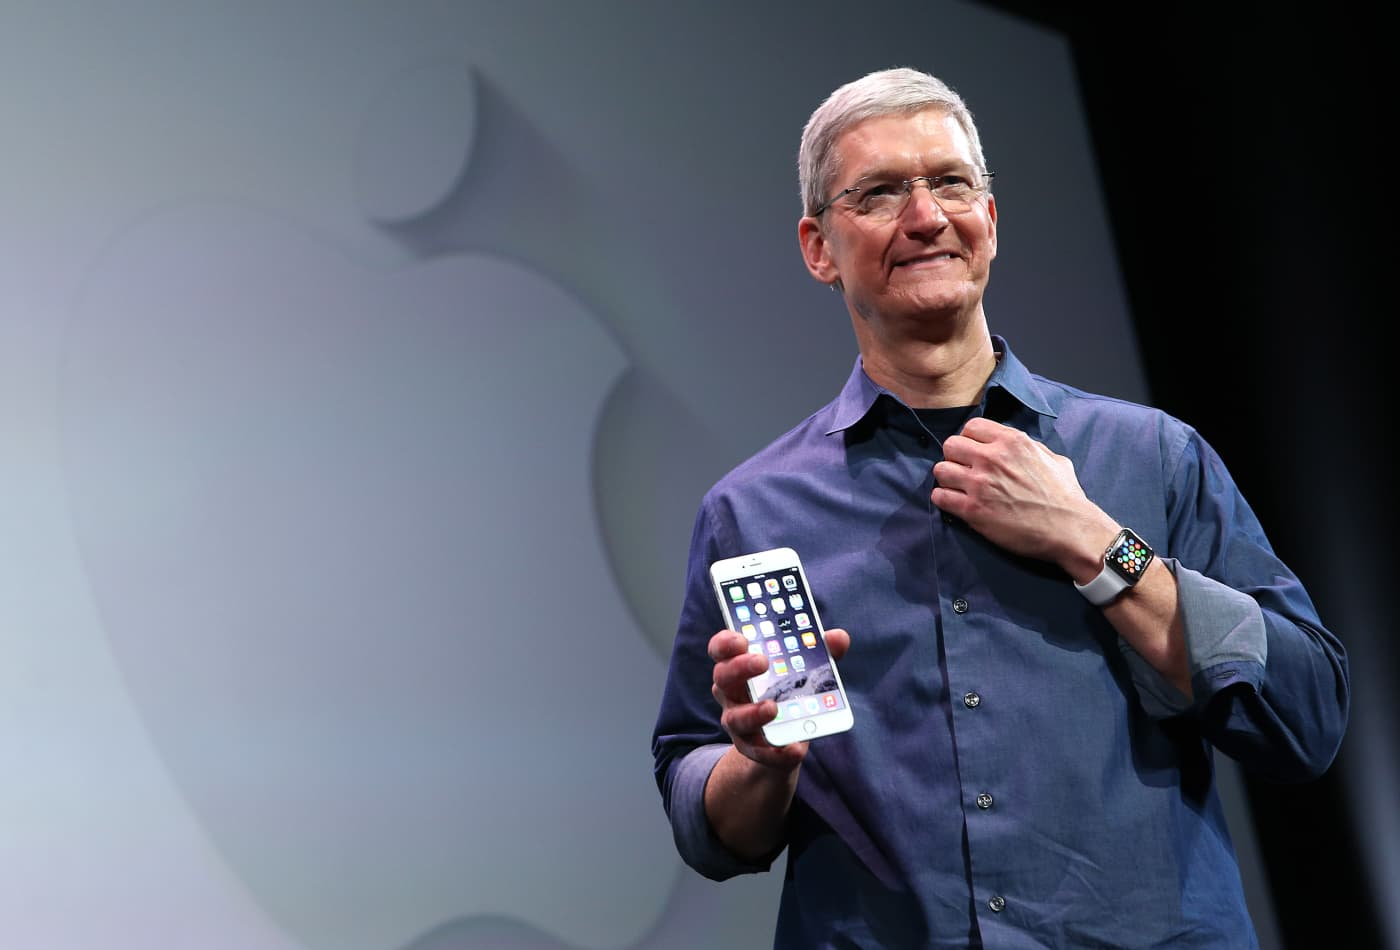 The iPhone decade: How Apple's phone created and destroyed industries and changed the world